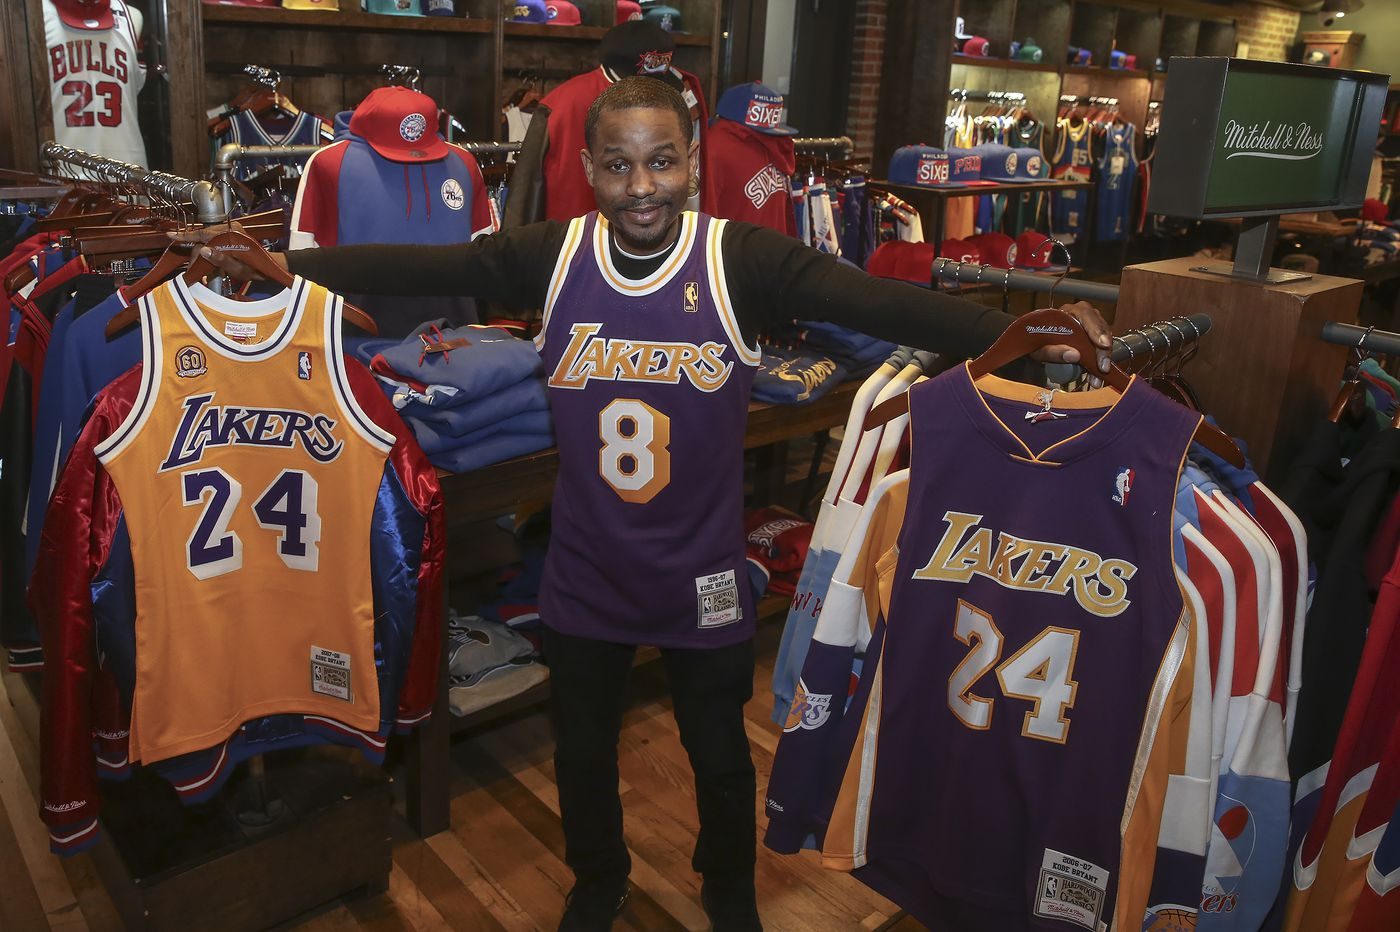 Philly's Mitchell & Ness keeps Kobe merch prices level amid sales boom